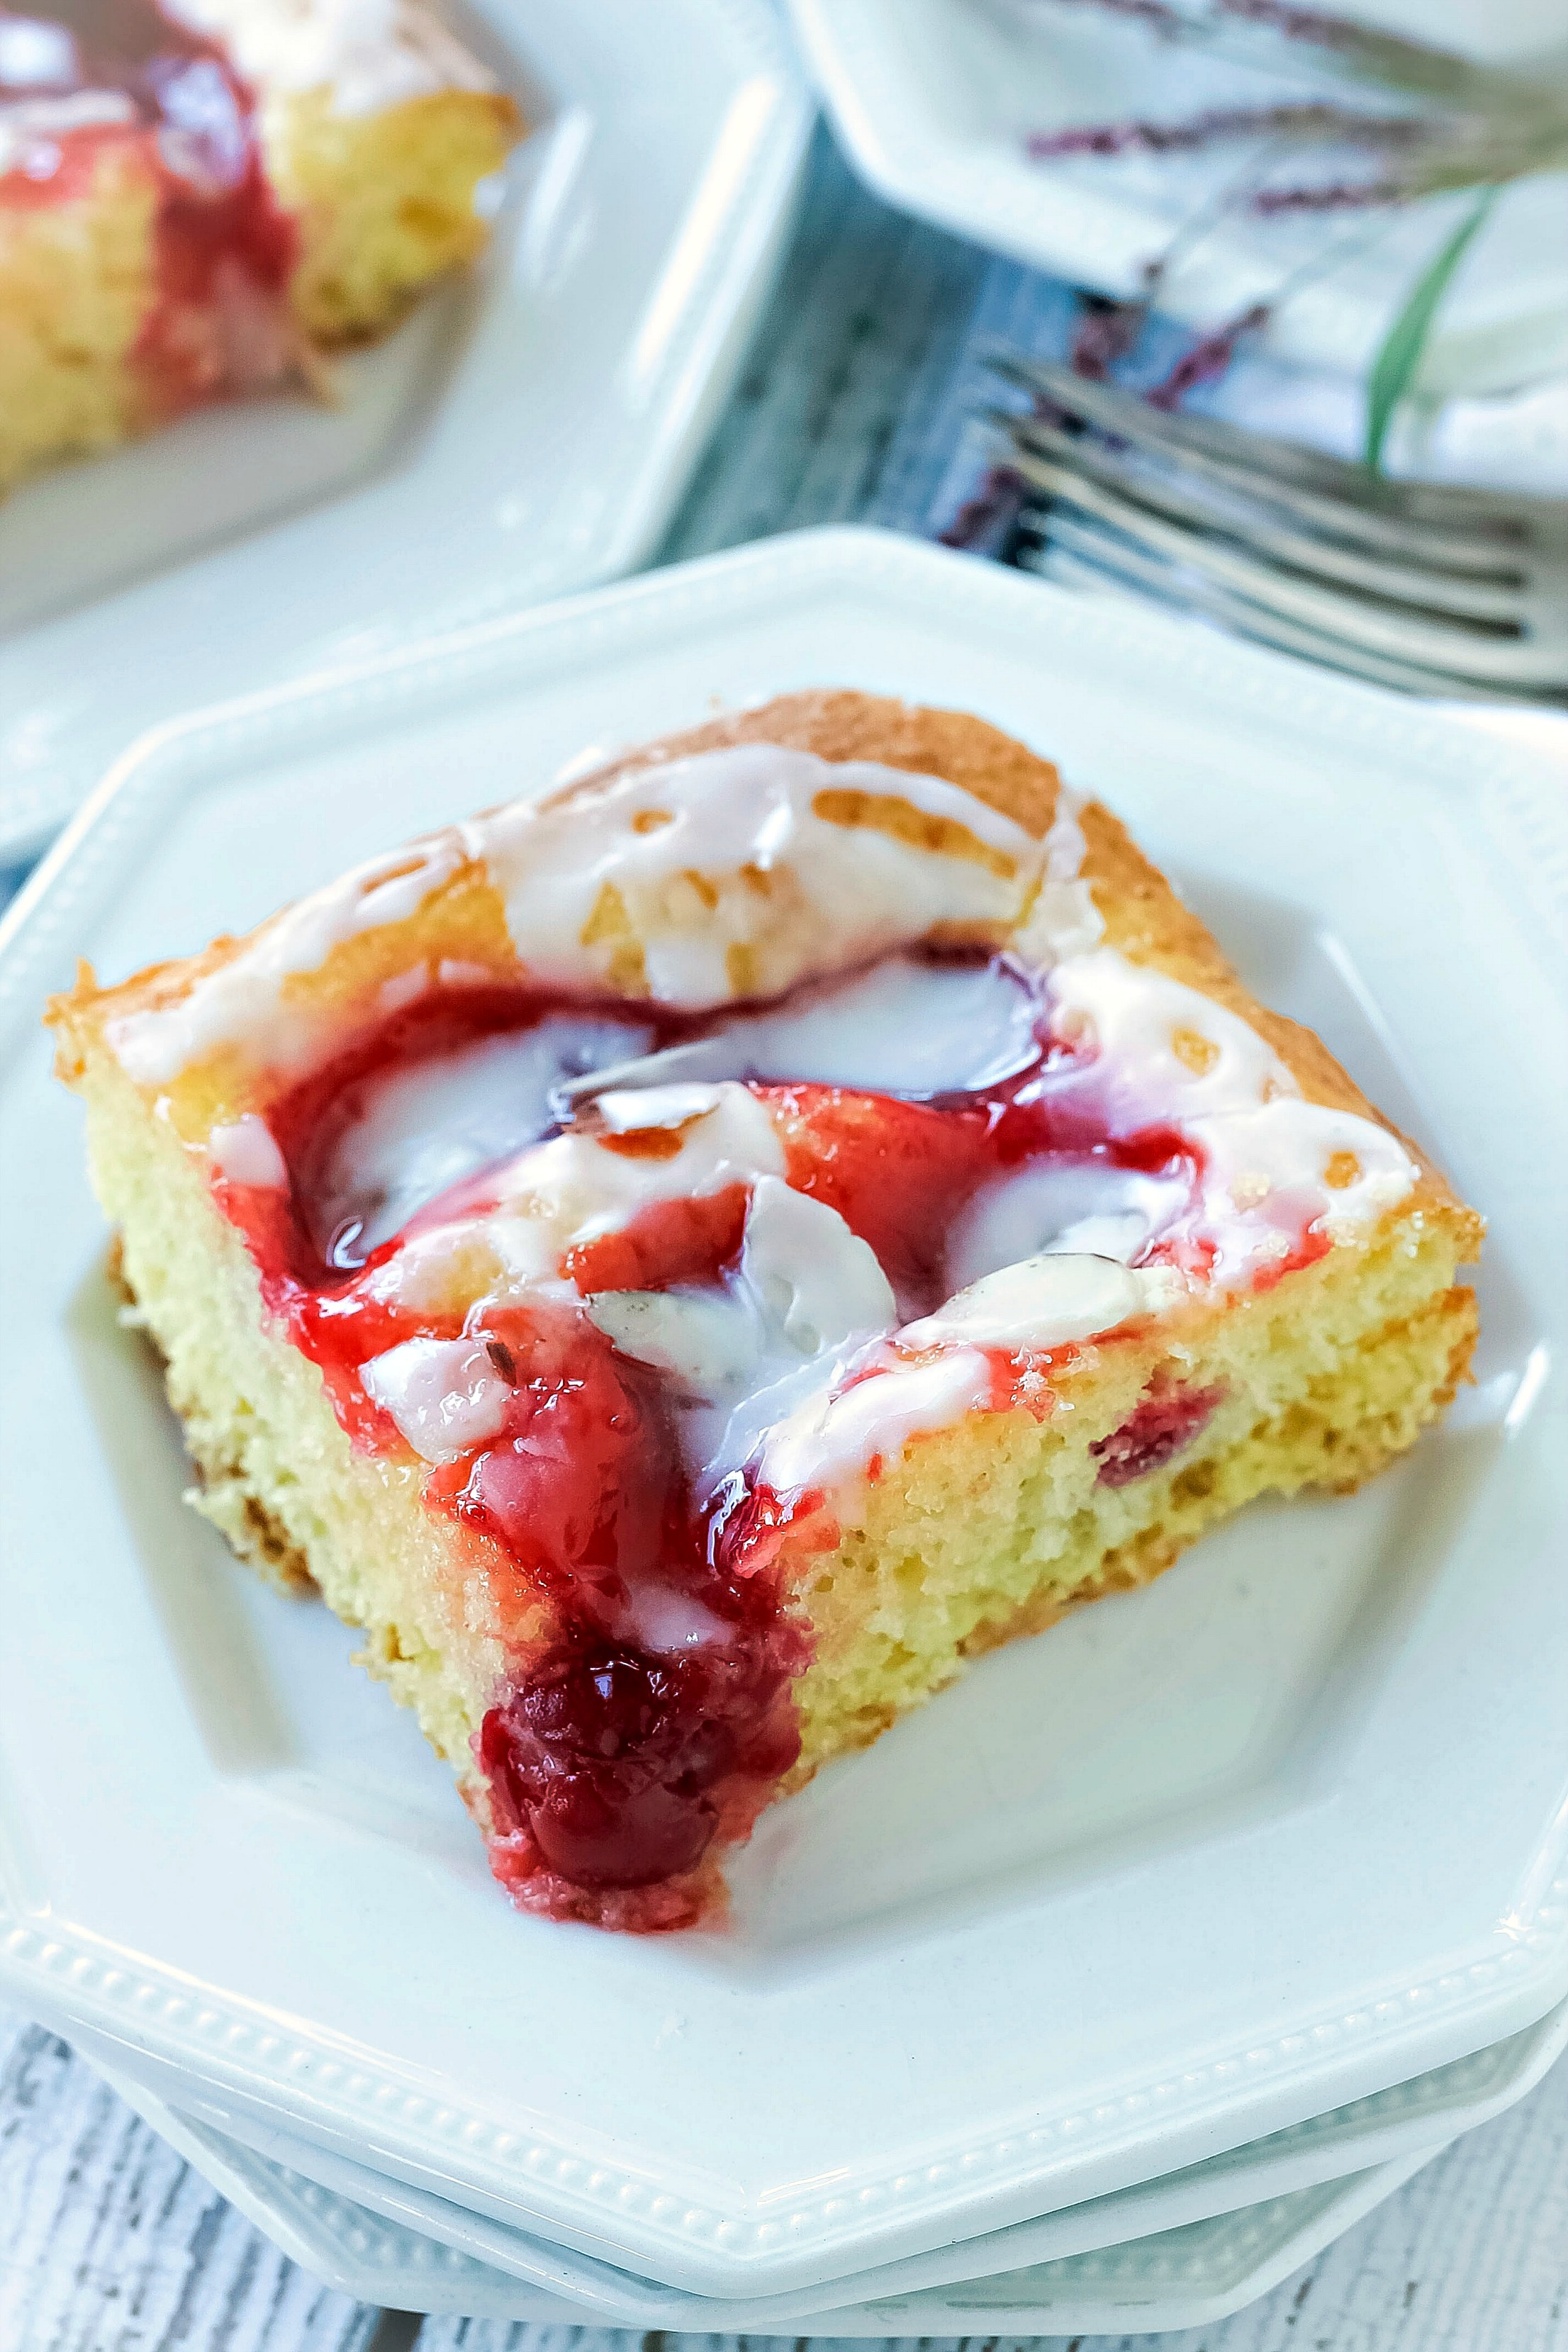 Glazed Cherry Coffee Cake Bunny S Warm Oven